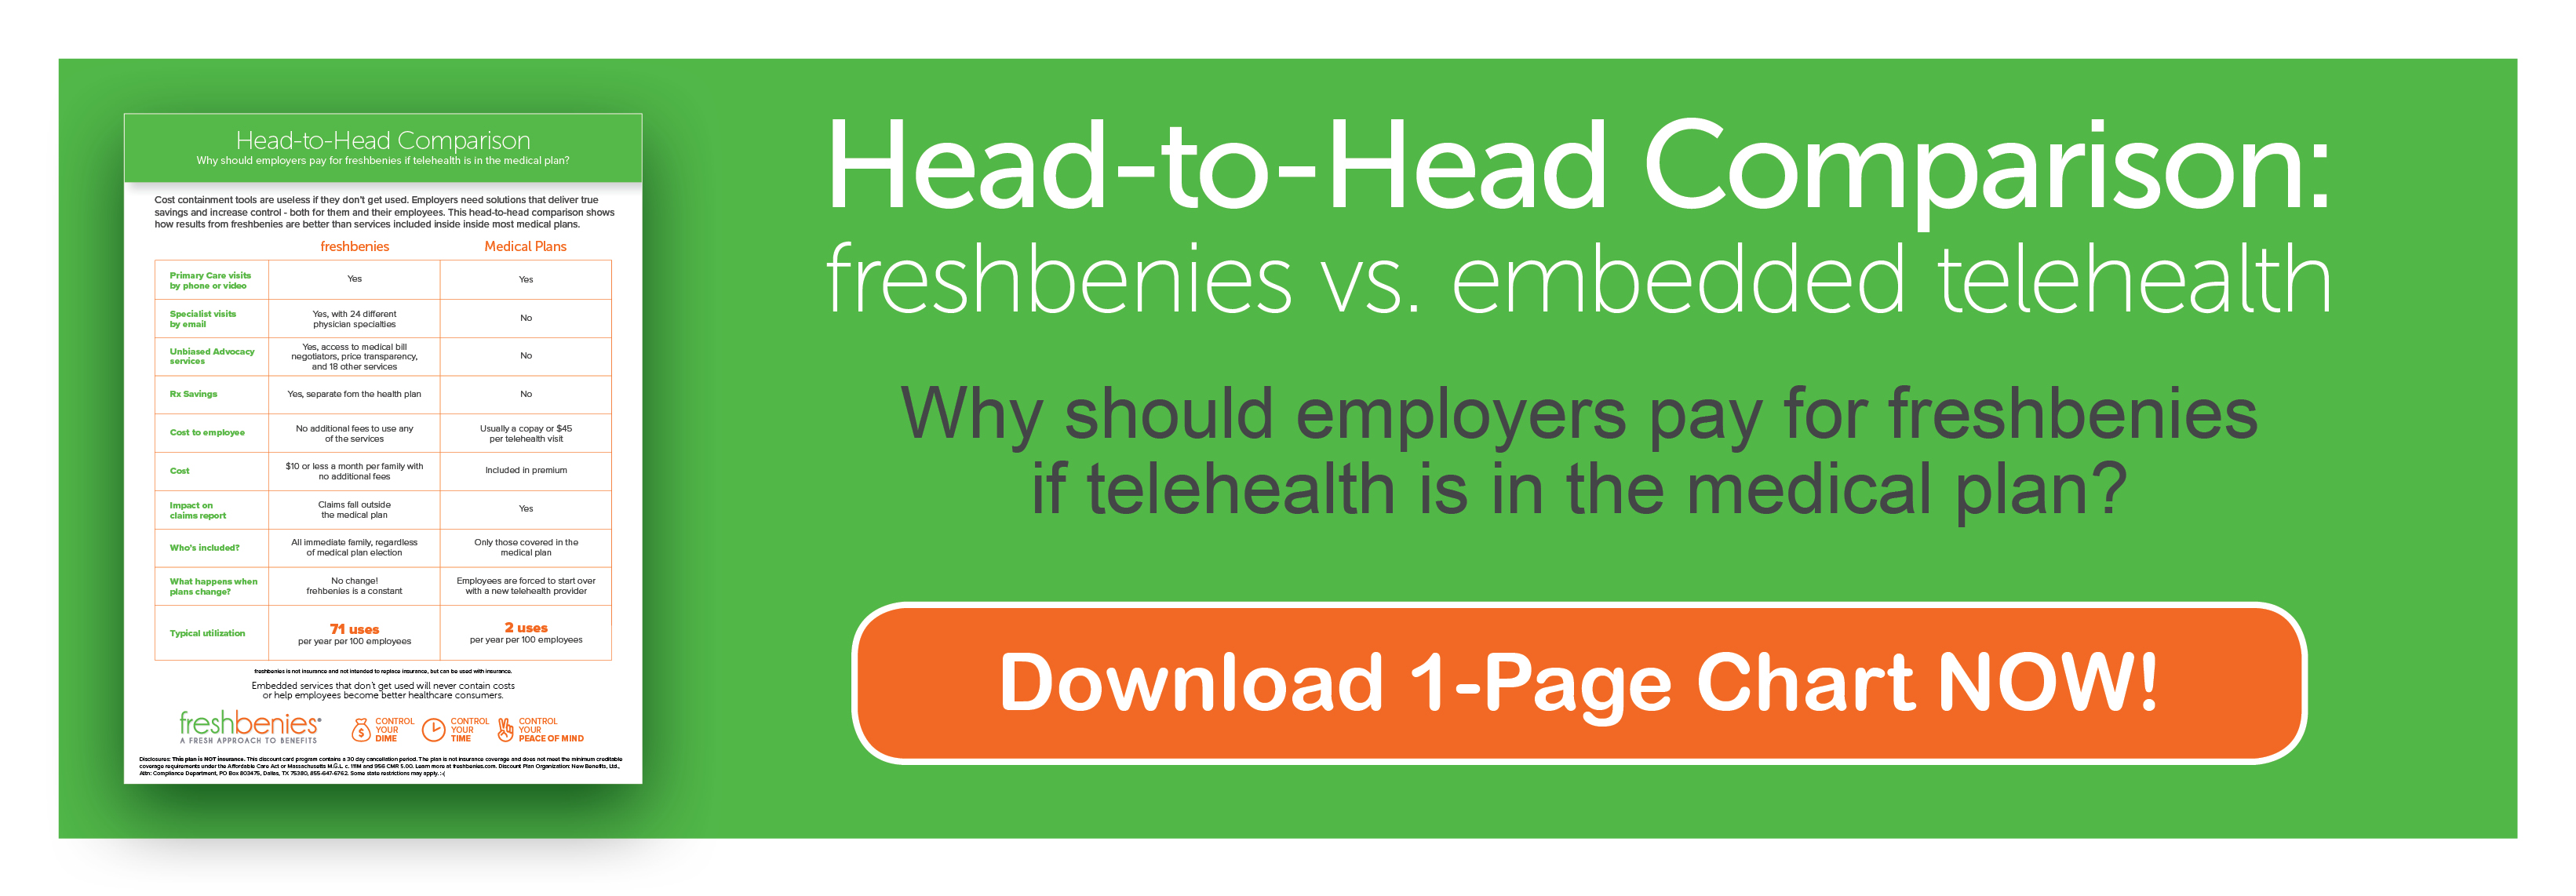 freshbenies vs embedded telehealth